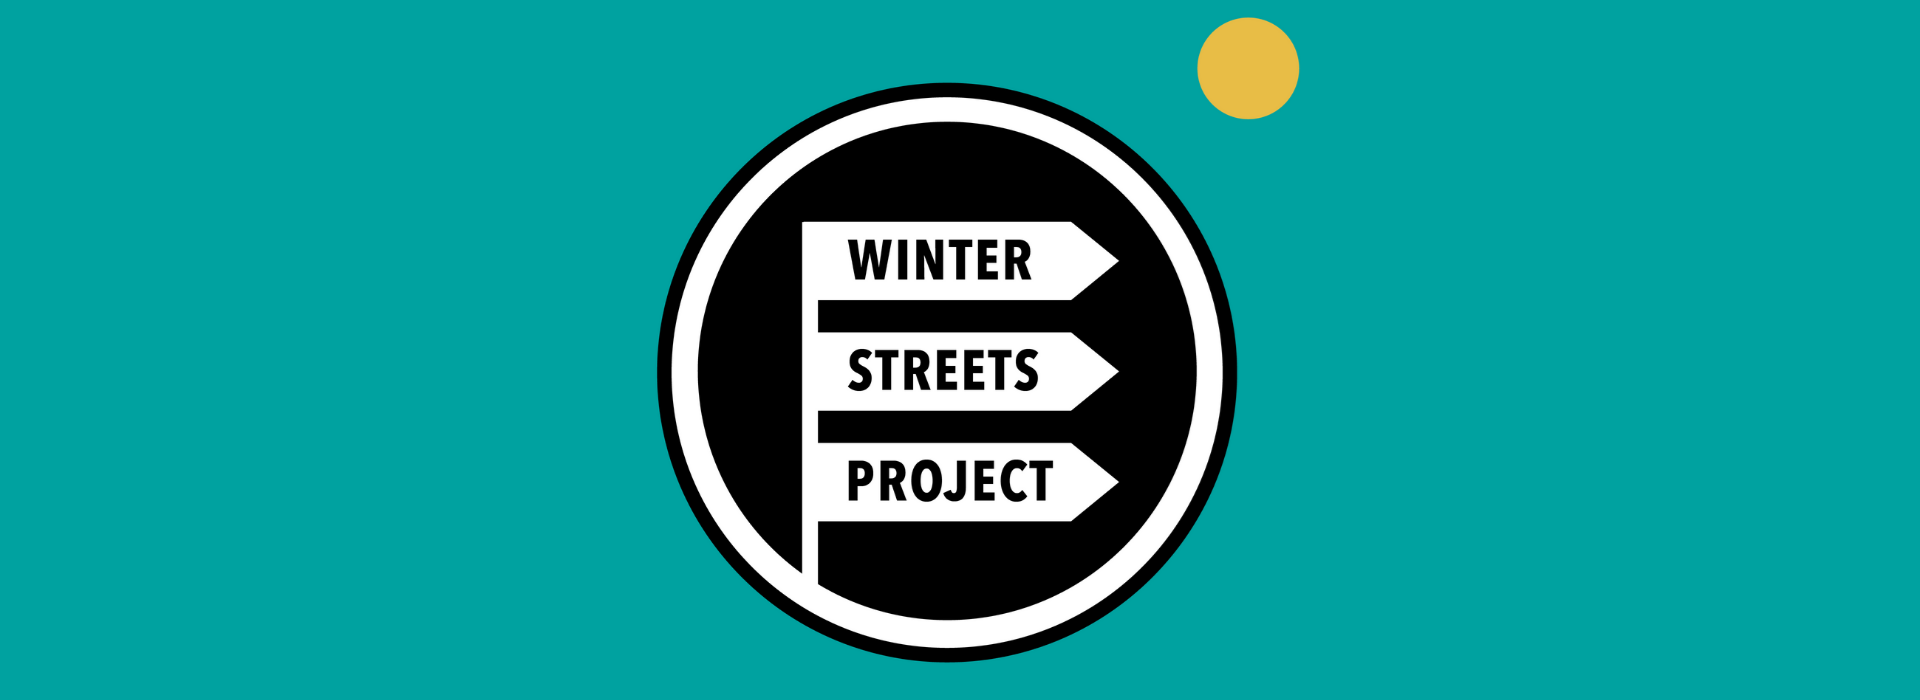 Winter Streets Project - Collection Day